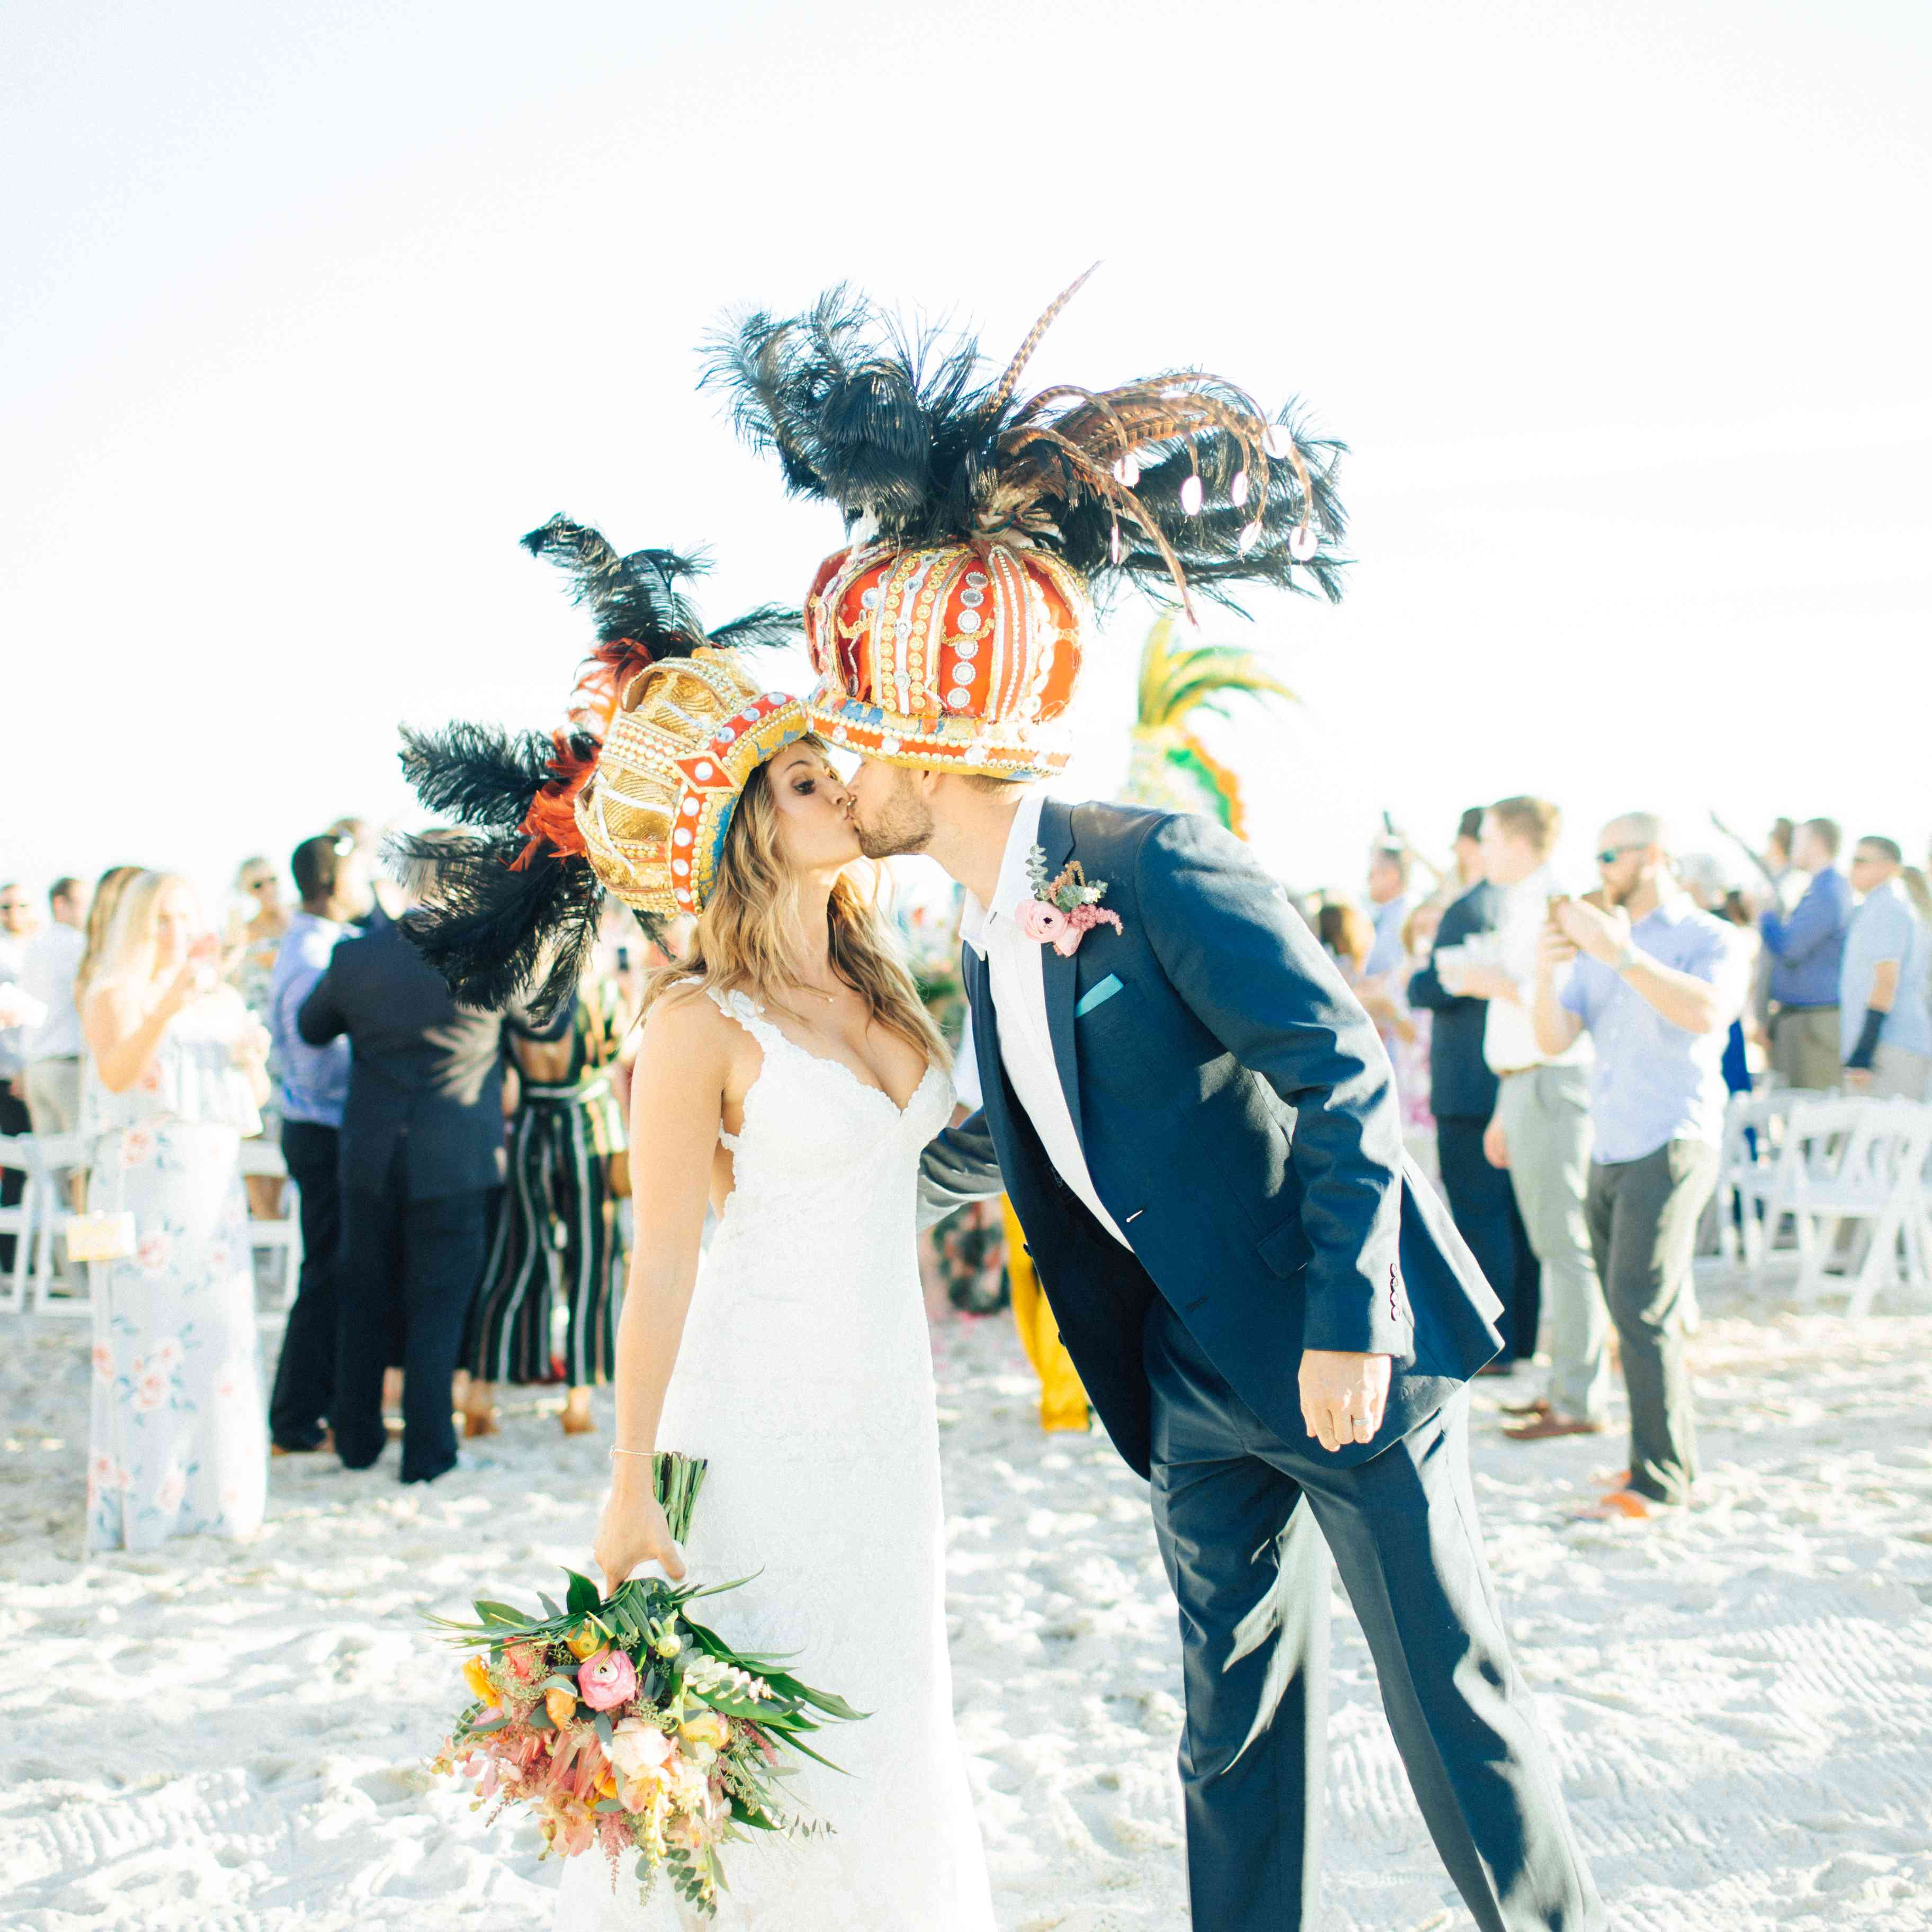 Bride and groom in hats